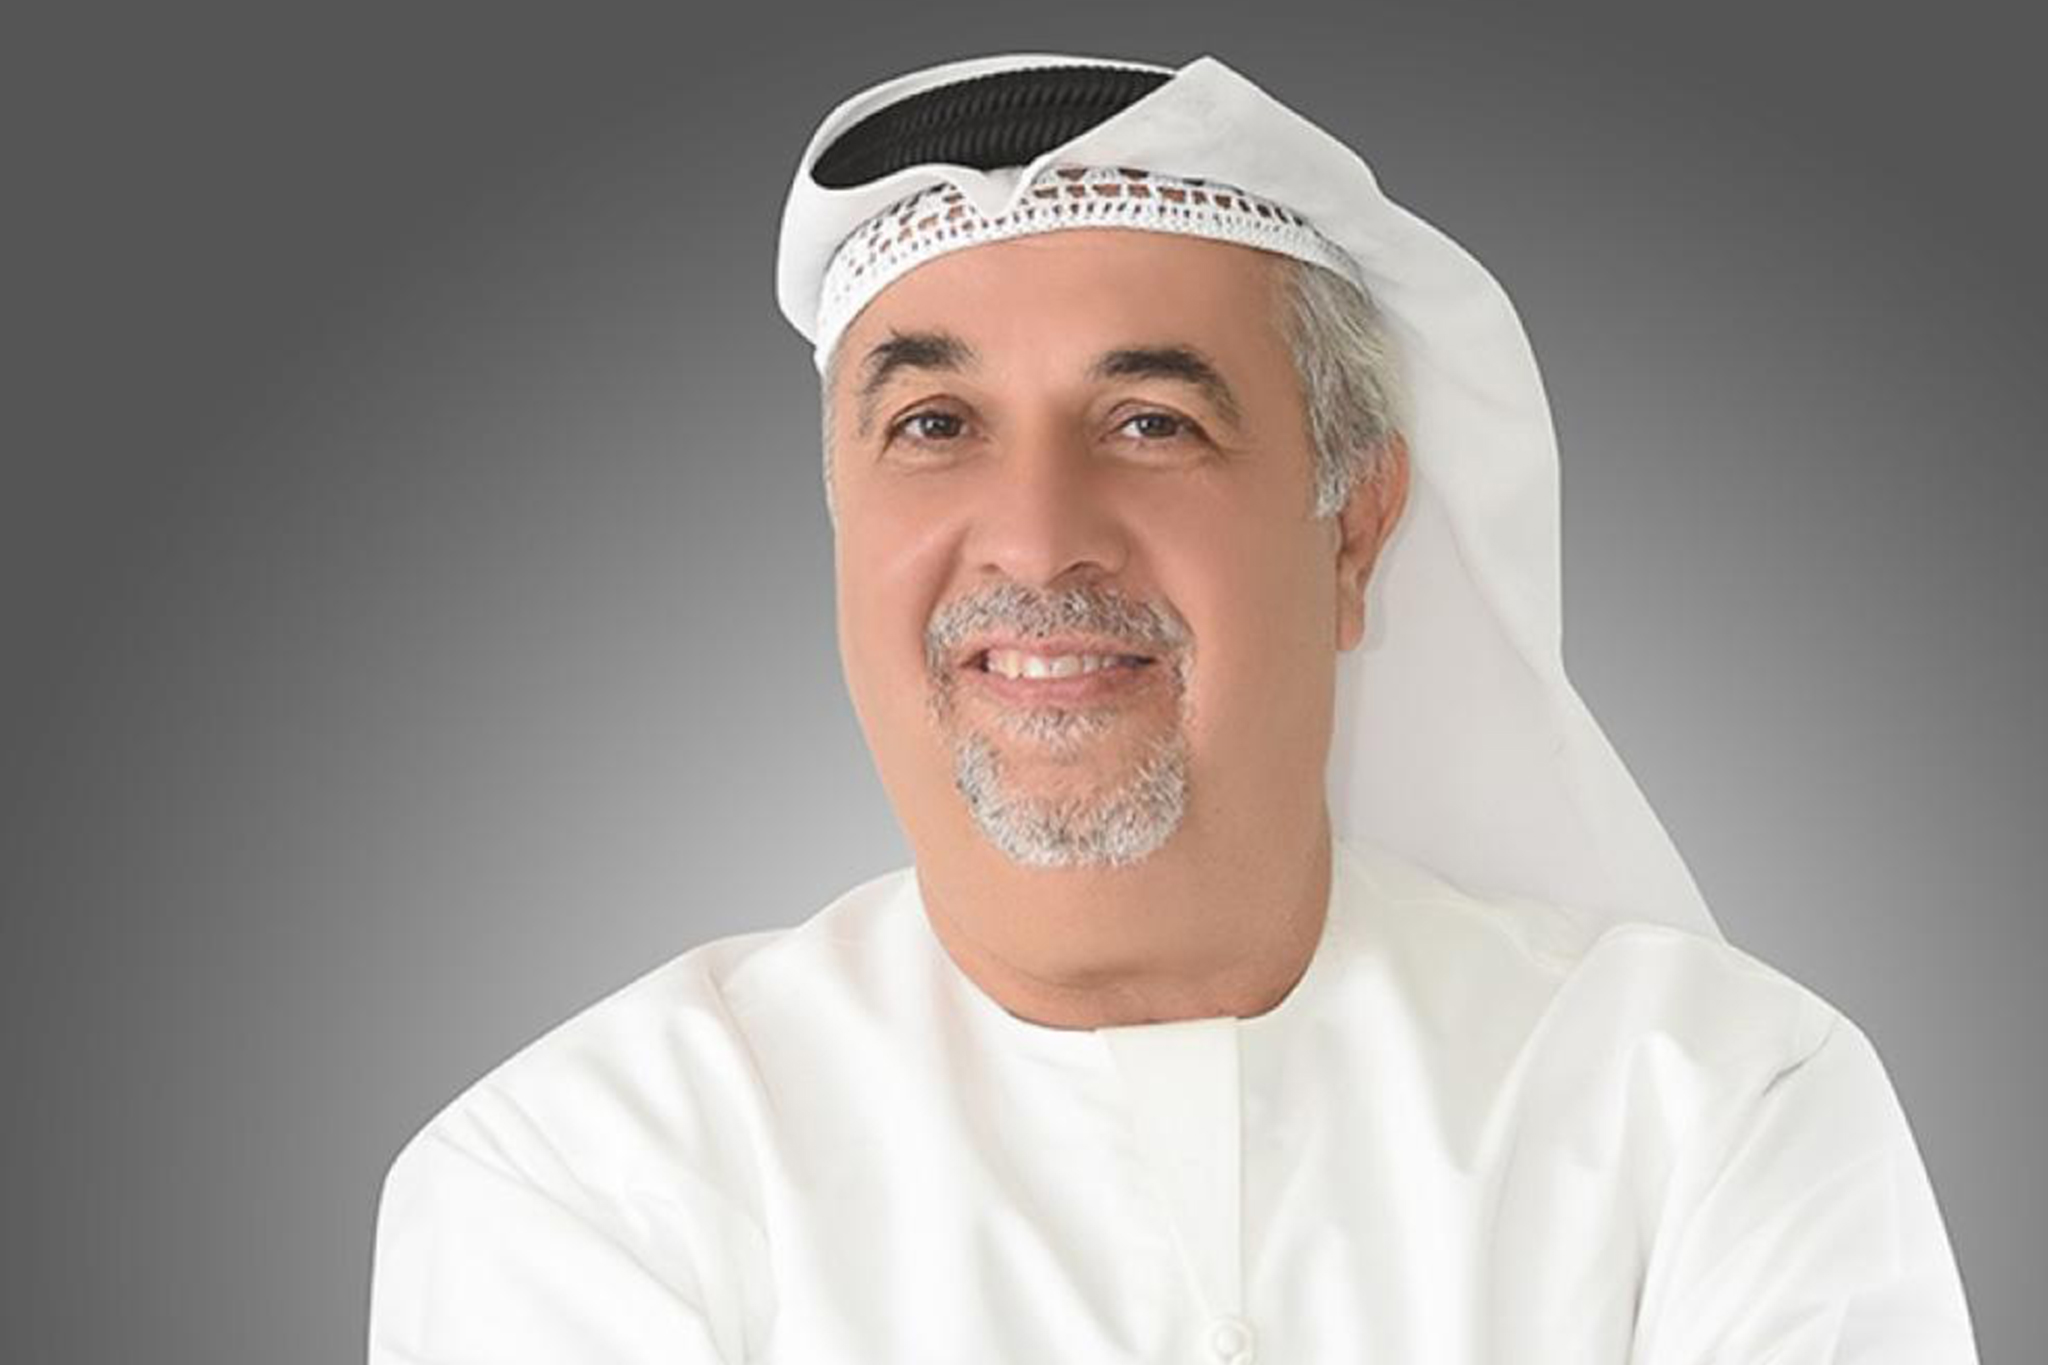 Chairman of dubai gold & jewellery group welcomes positive new reforms